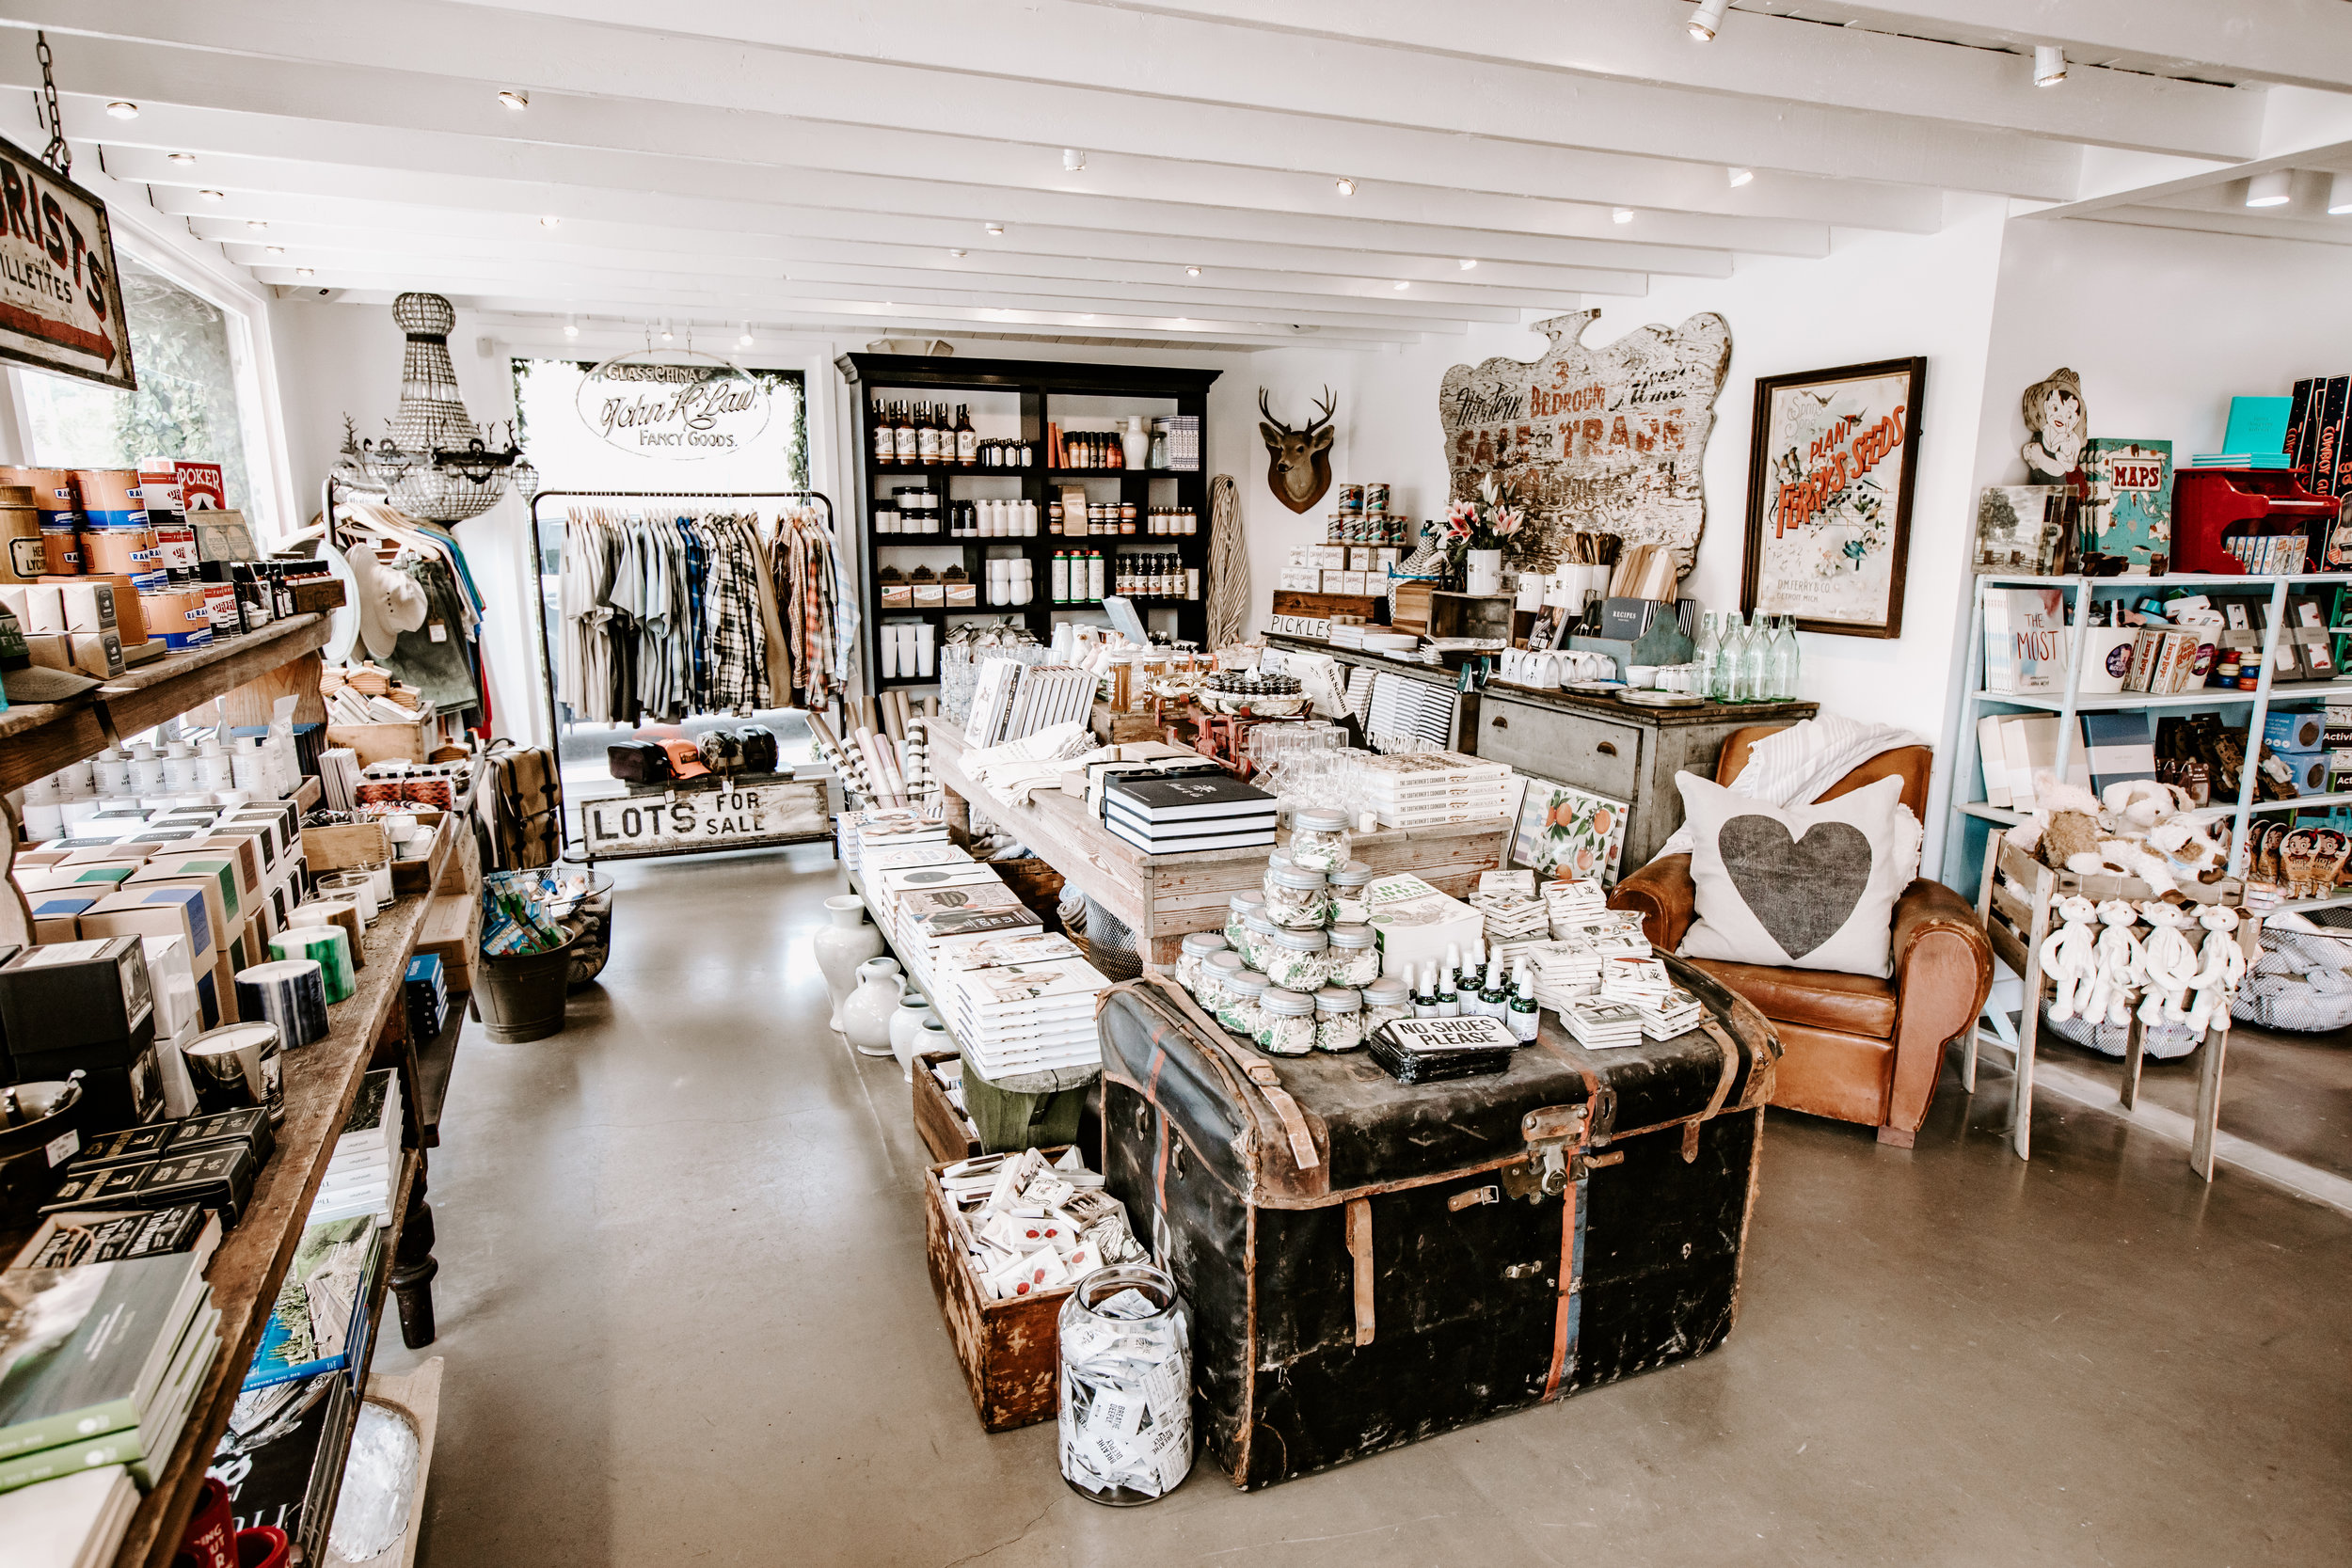 The new White's Mercantile store in the Malibu Country Mart opened in May.